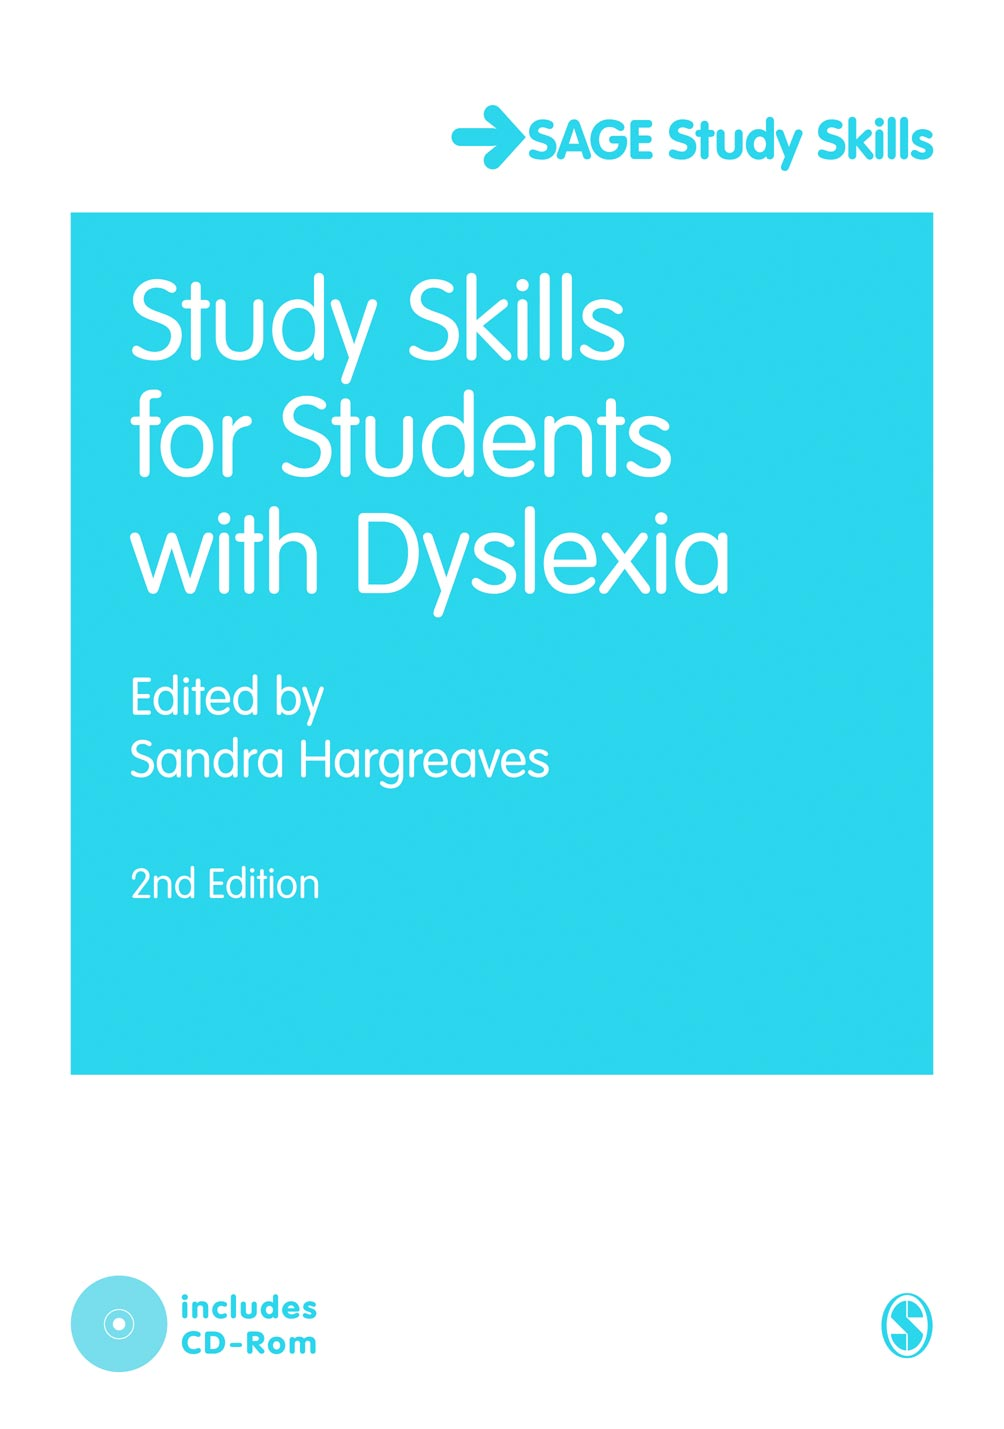 Study Skills for Students with Dyslexia